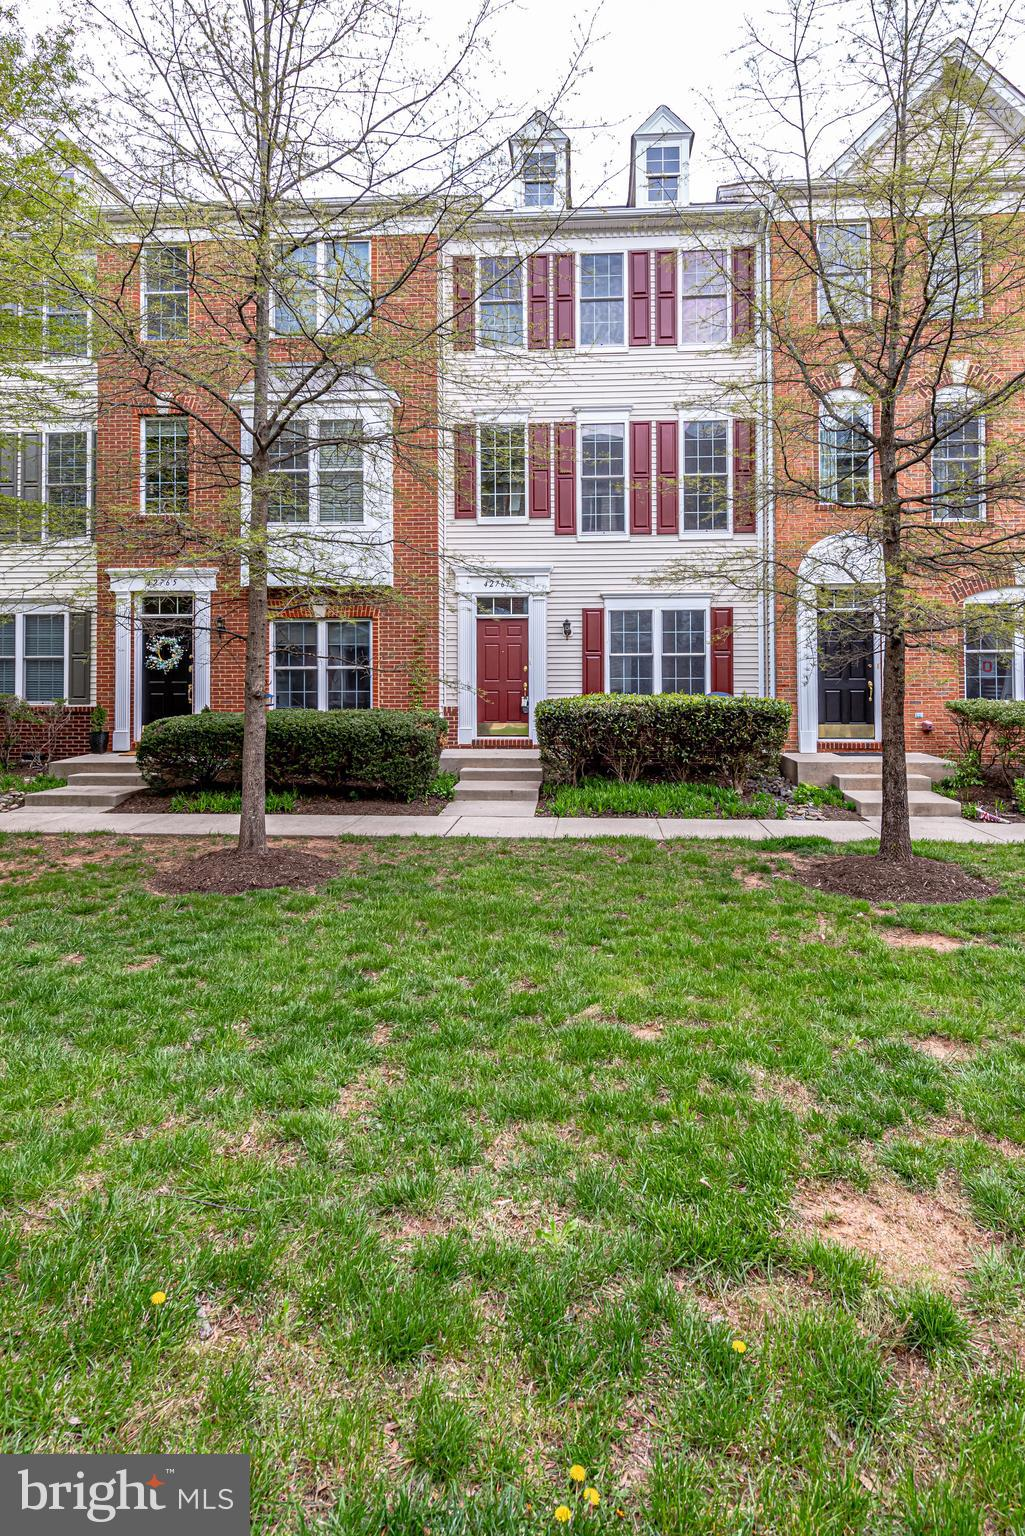 Picture-perfect townhome in desirable South Riding! This 3 level, 4 bedrooms, and 2.5 bath home is m